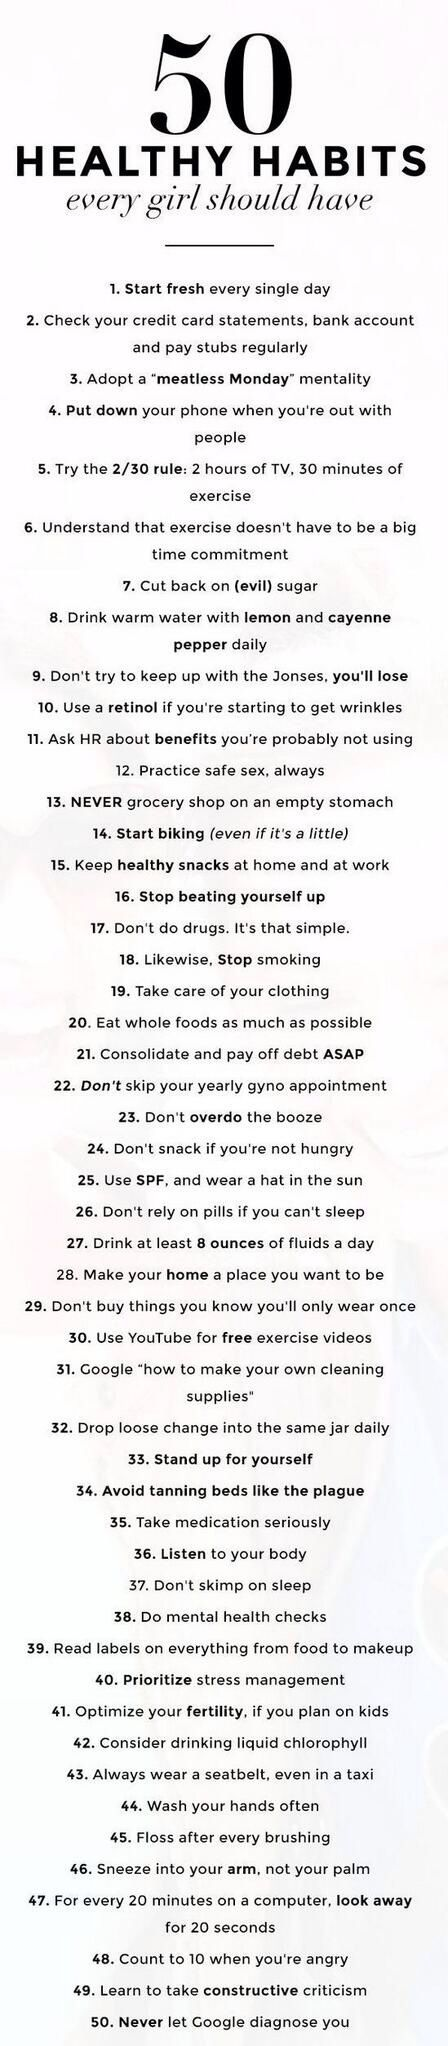 50 healthy habits every girl should have.